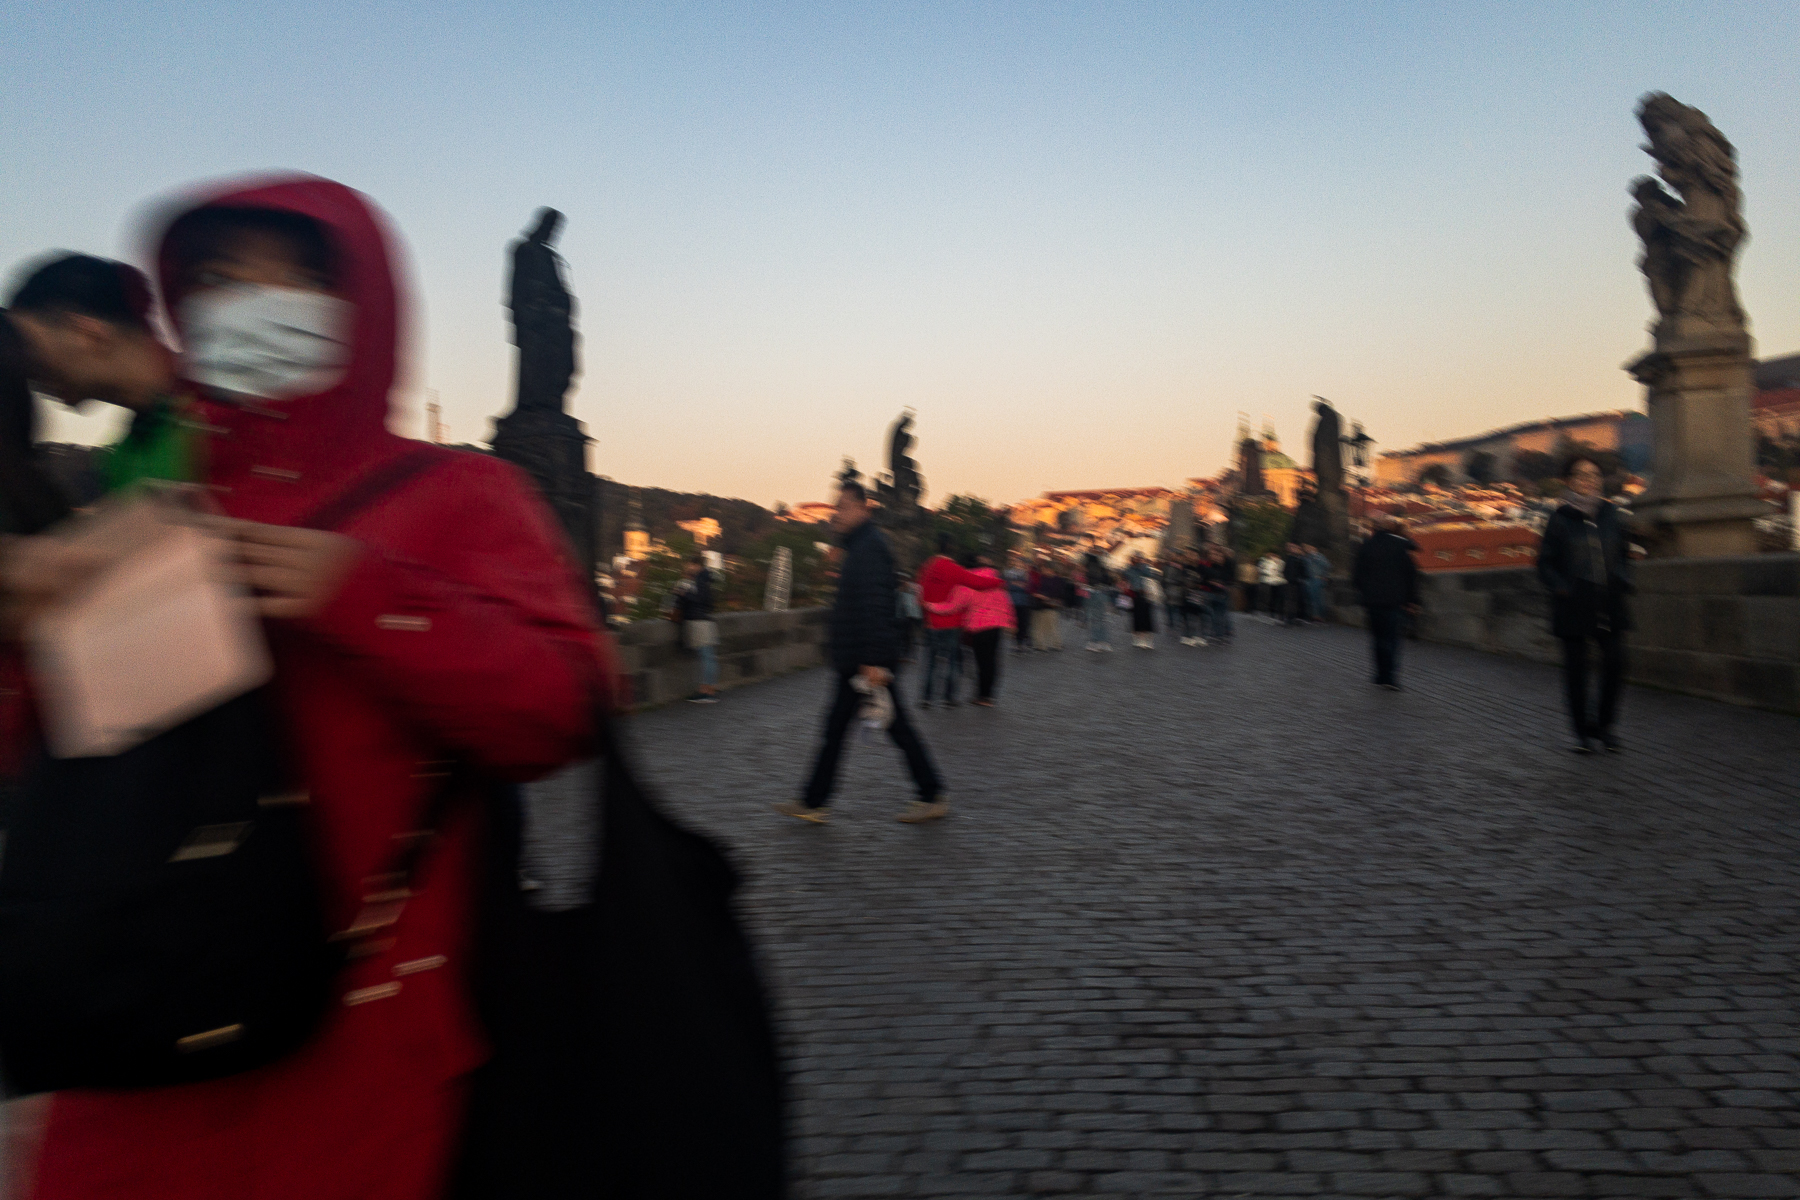 Charles Bridge is the tourist attraction in the heart of the city. Sometimes you have to squeeze through the mass of people on the bridge. Here I pass a woman who's got her phone at the ready for a snapshot while a wall of people in the background tries to grab a shot of sunrise over the old town. Prague, Czechia, September 22, 2019.